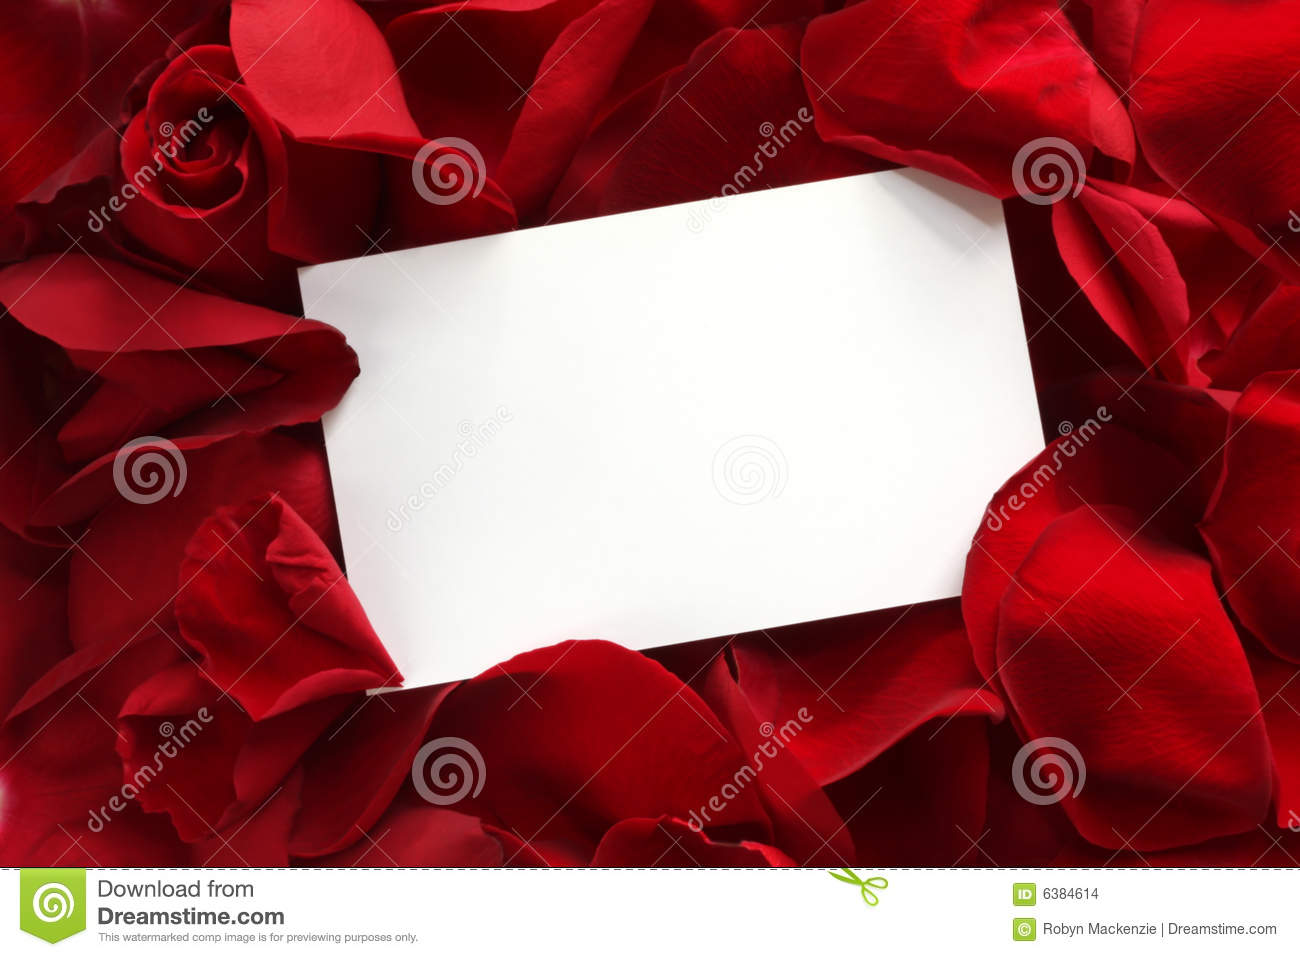 Gift Card on Red Rose Petals